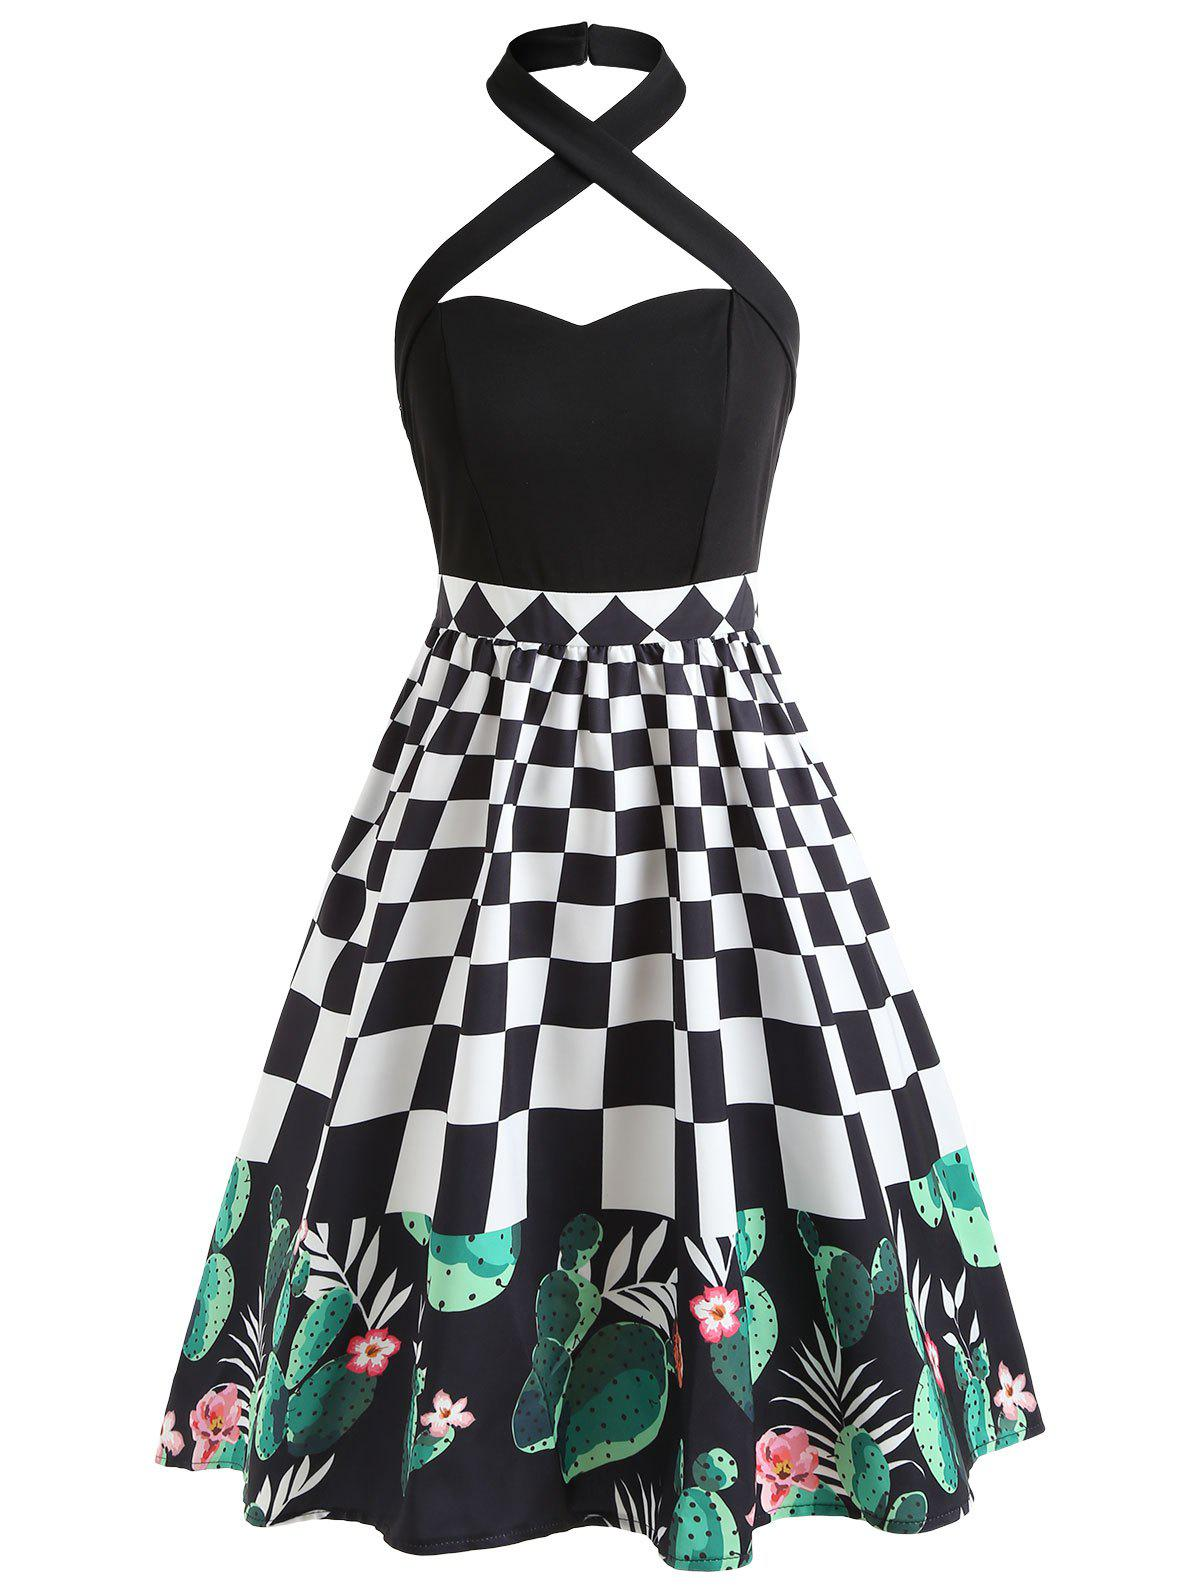 Buy Checked Cactus Print Halter Neckline Vintage Dress